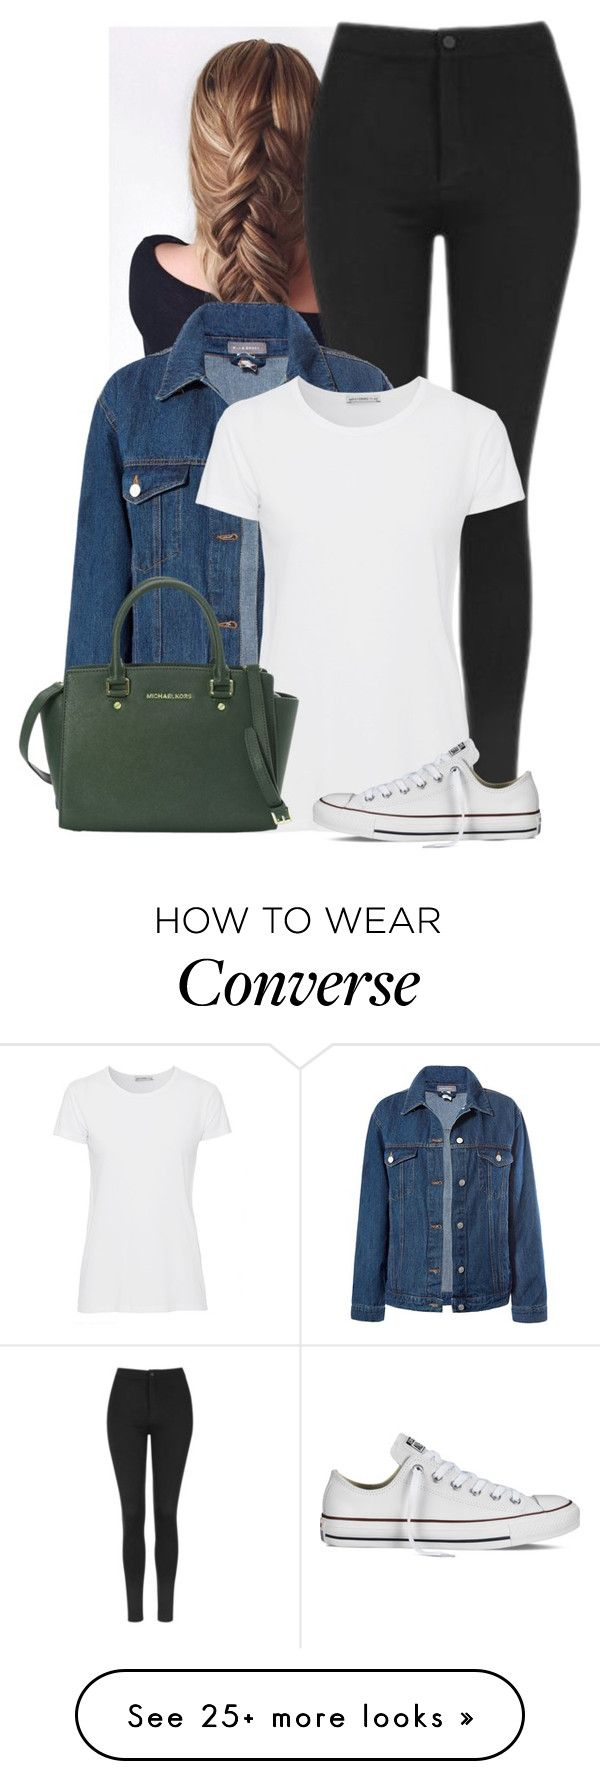 """Untitled #876"" by bunnylovexox on Polyvore featuring Topshop, Sans Souci, AG Adriano Goldschmied, MICHAEL Michael Kors and Converse"